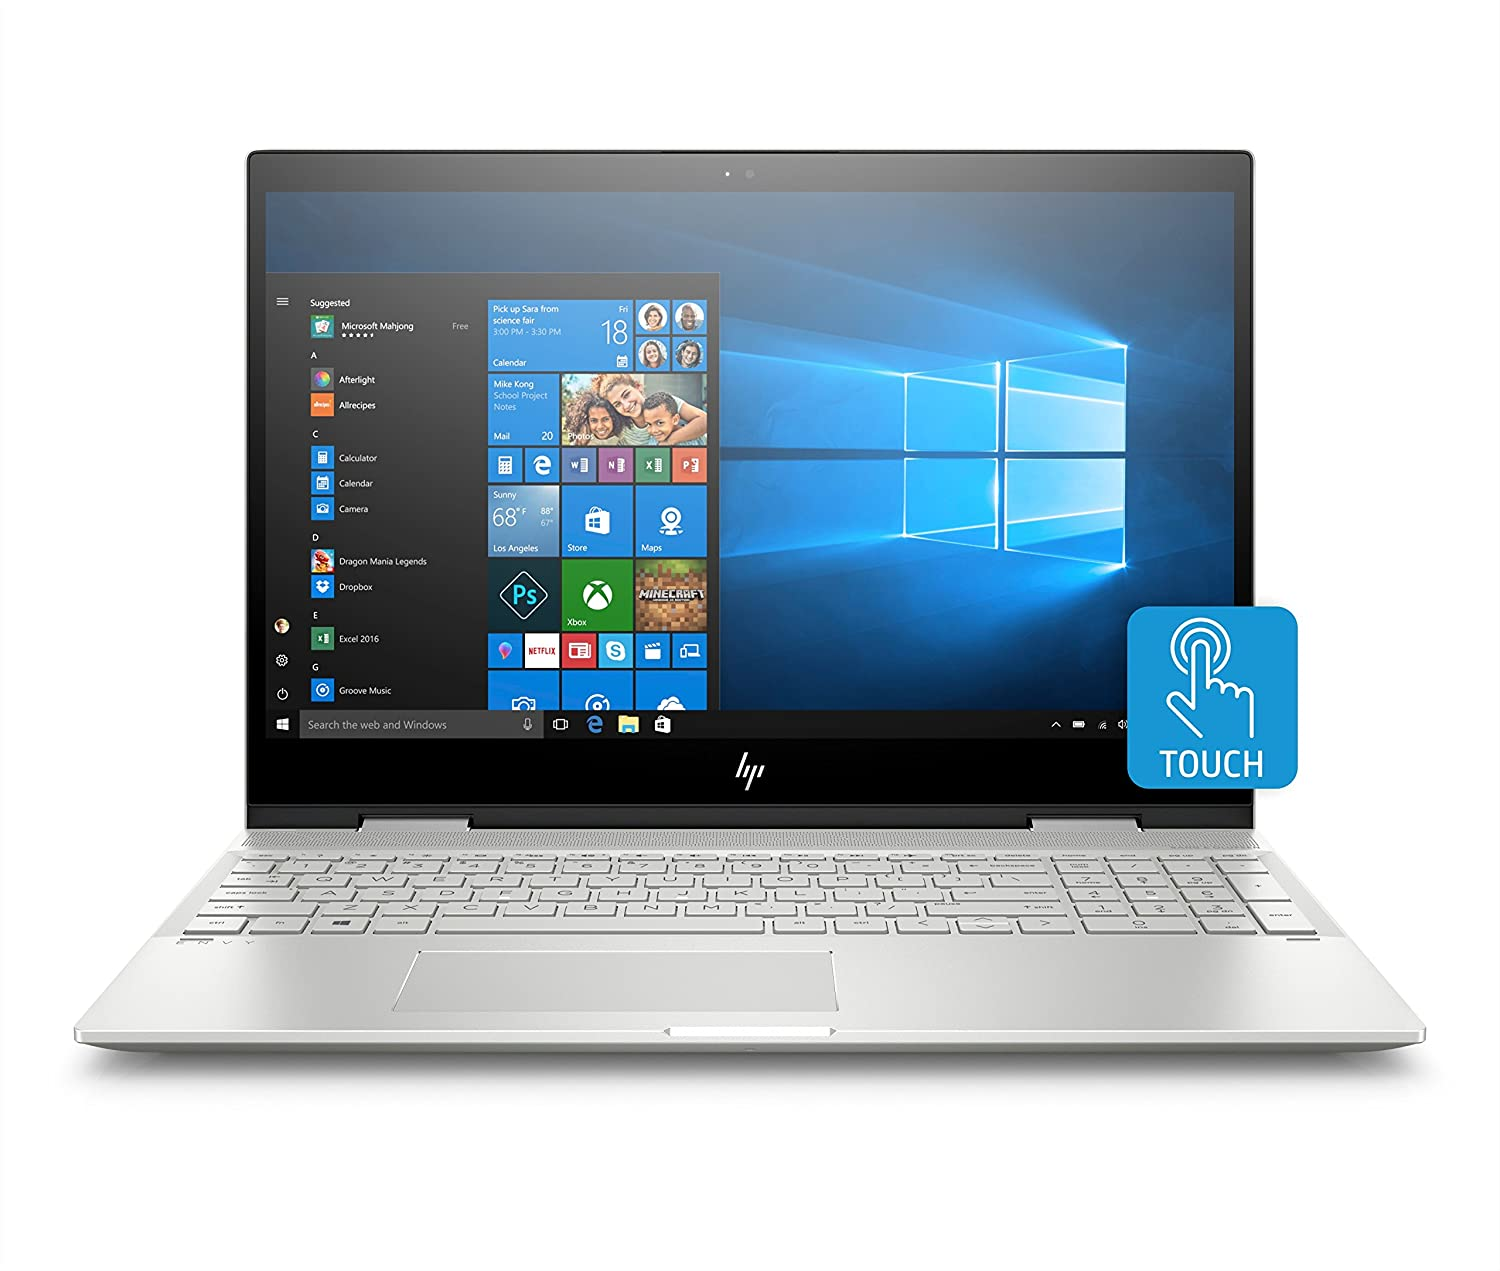 "HP - ENVY x360 2-in-1 15.6"" Touch-Screen Laptop - Intel Core i7 - 12GB Memory - 256GB Solid State Drive - HP Finish In Natural Silver"